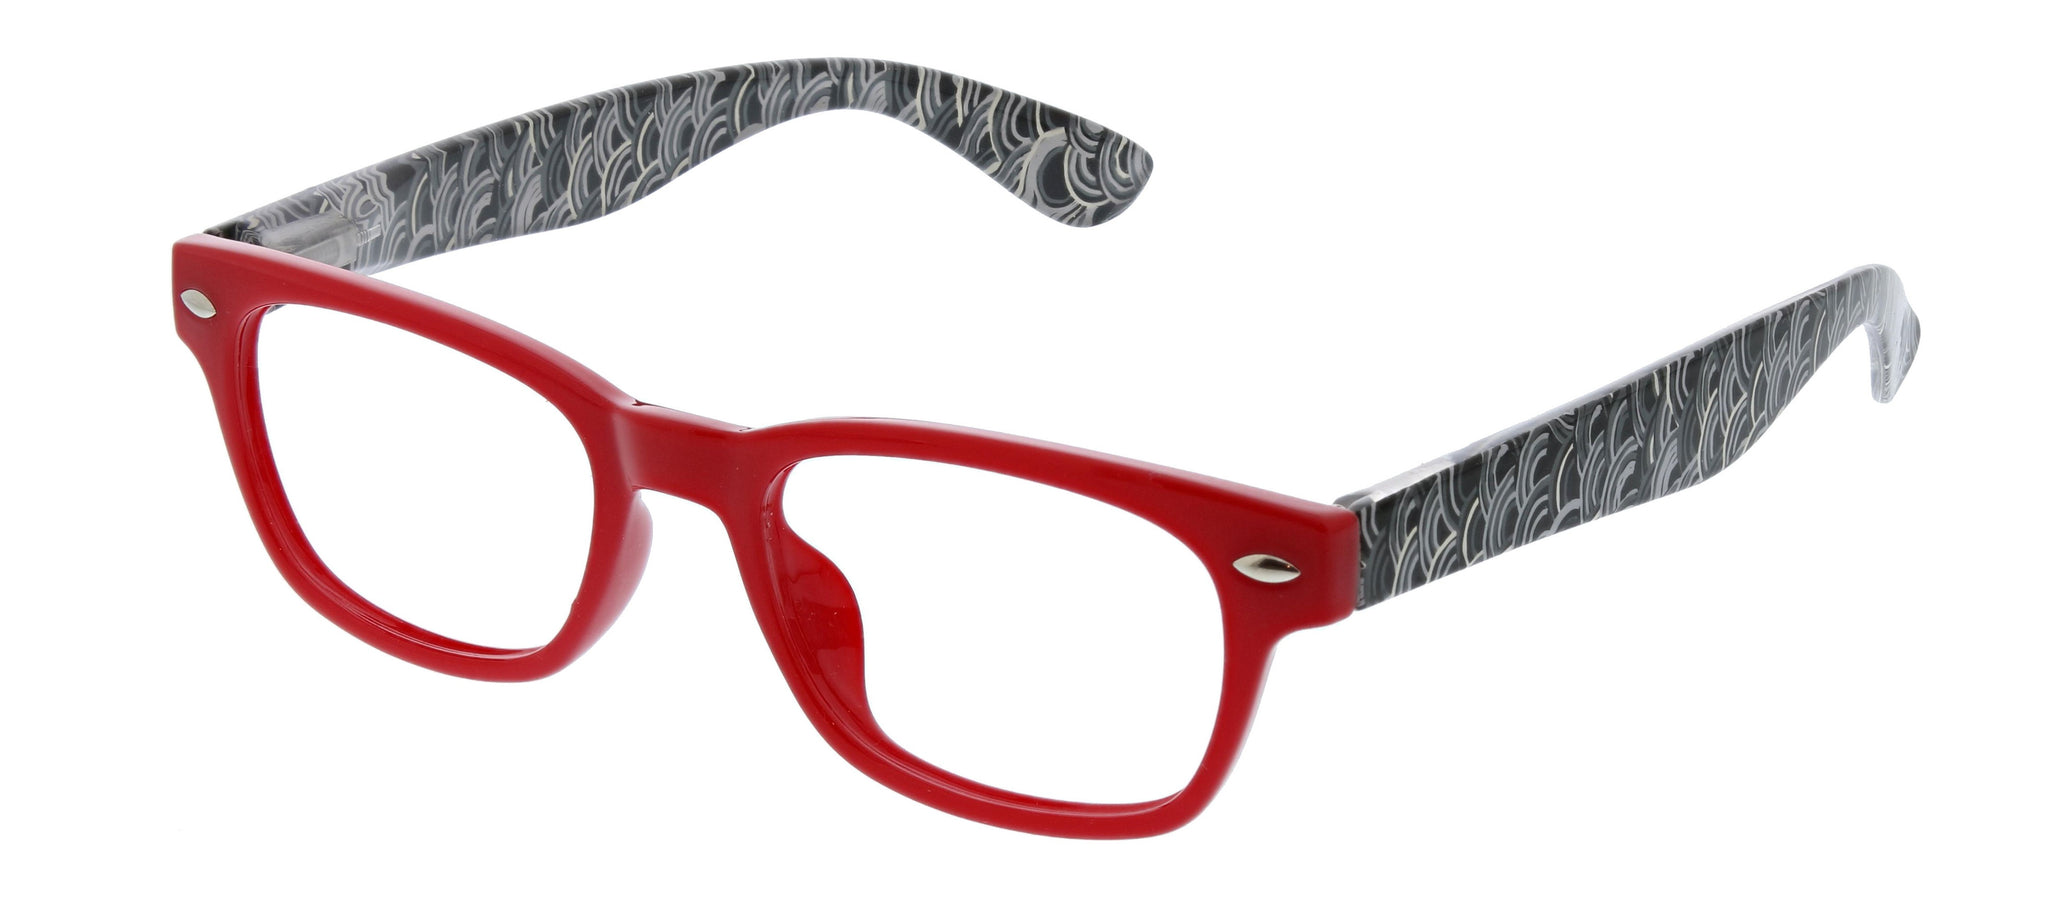 Wavelength blue light reading glasses in red by Peepers